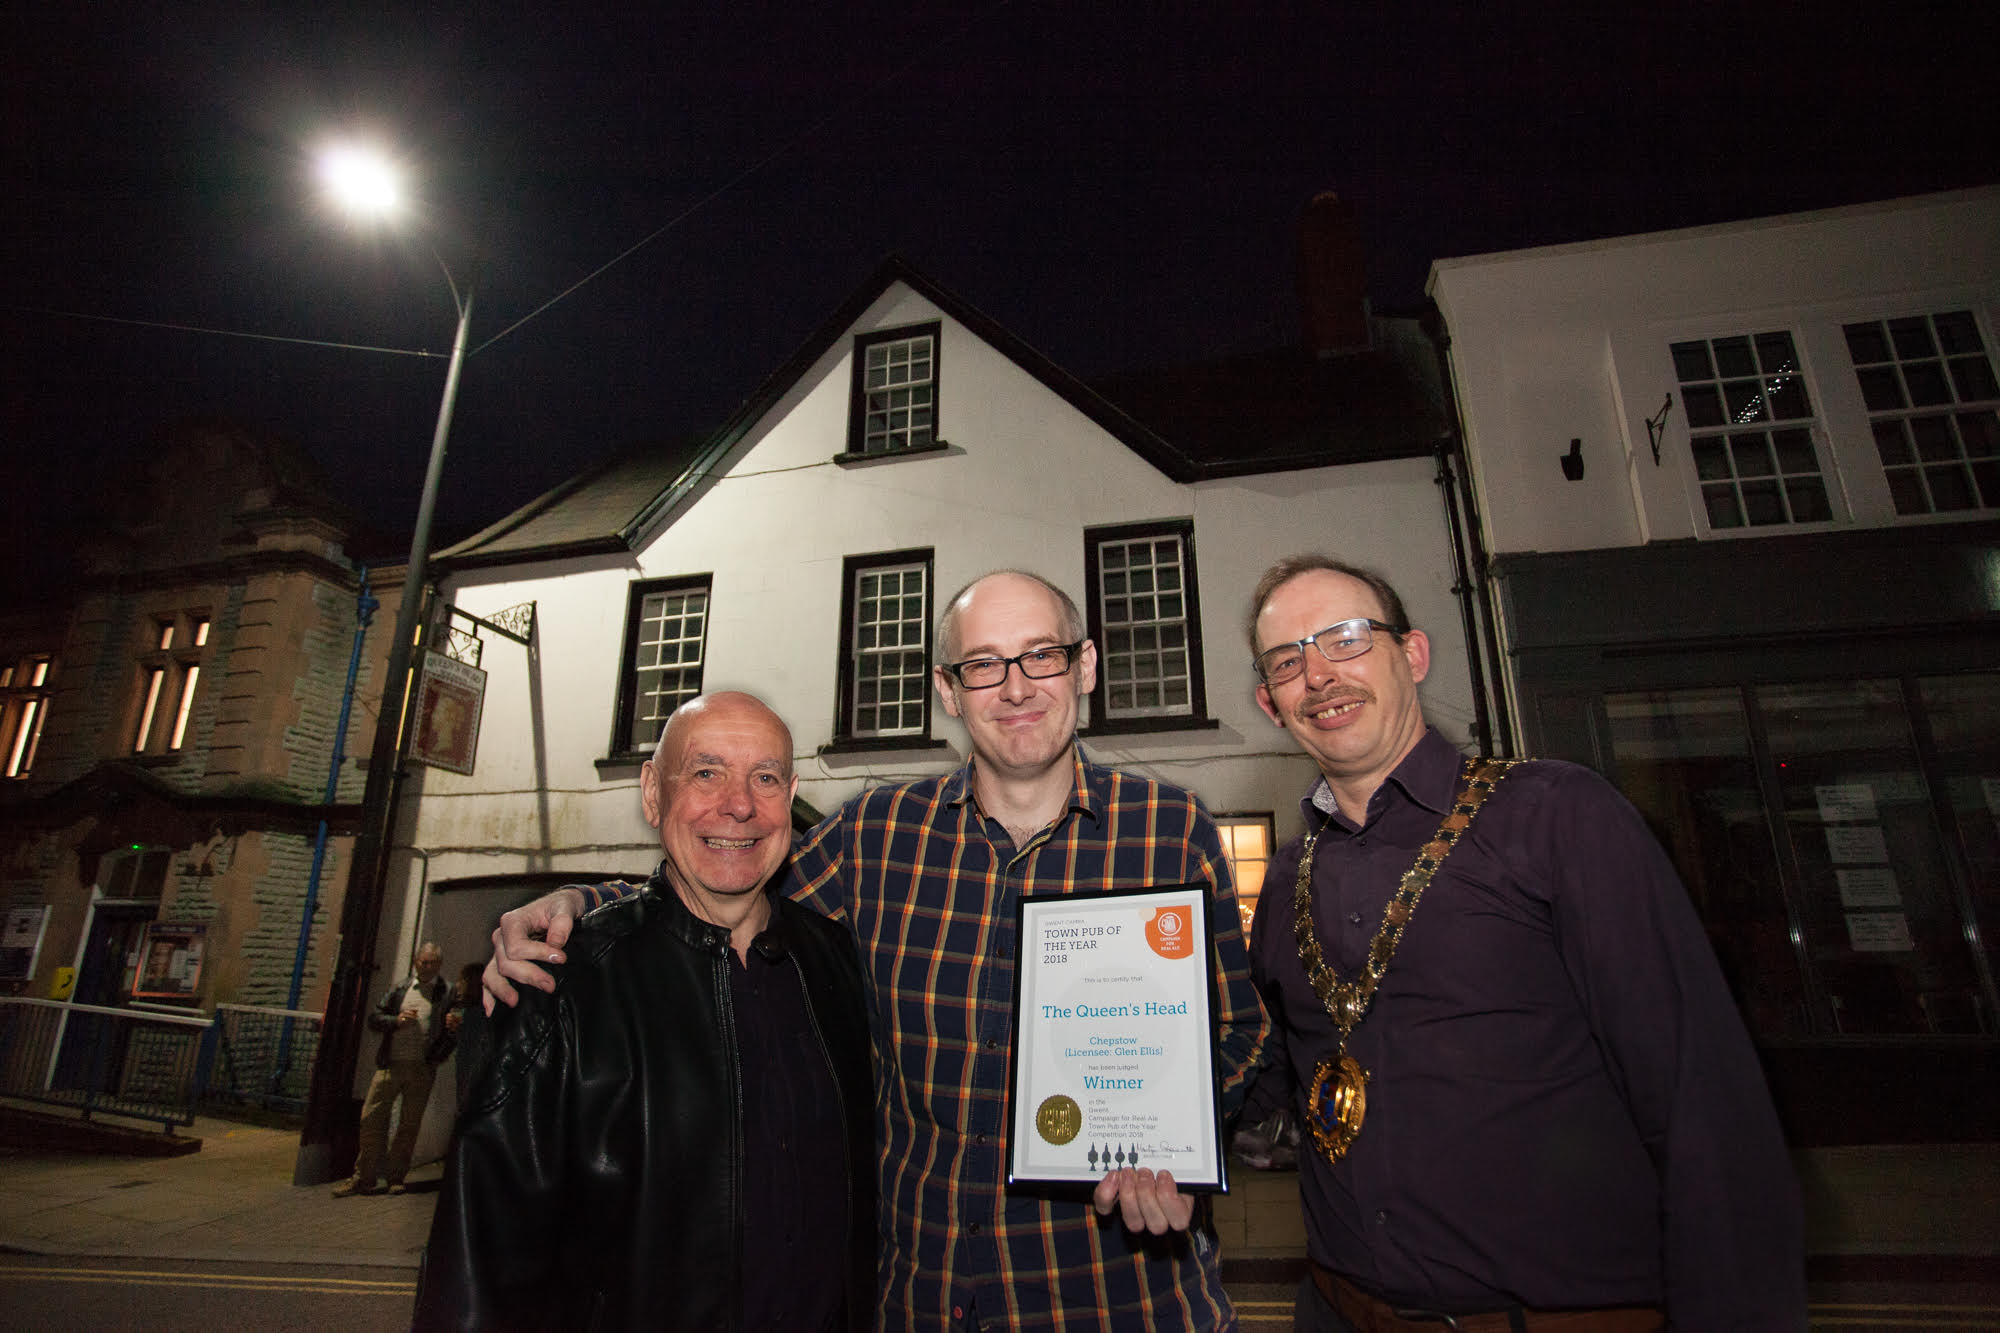 l-r) Martyn Groucutt, Gwent Camra Chairman, Glen Ellis, Queens Head landlord) and Cllr Dale Rooke mayor of Chepstow. Picture: Dai Baker